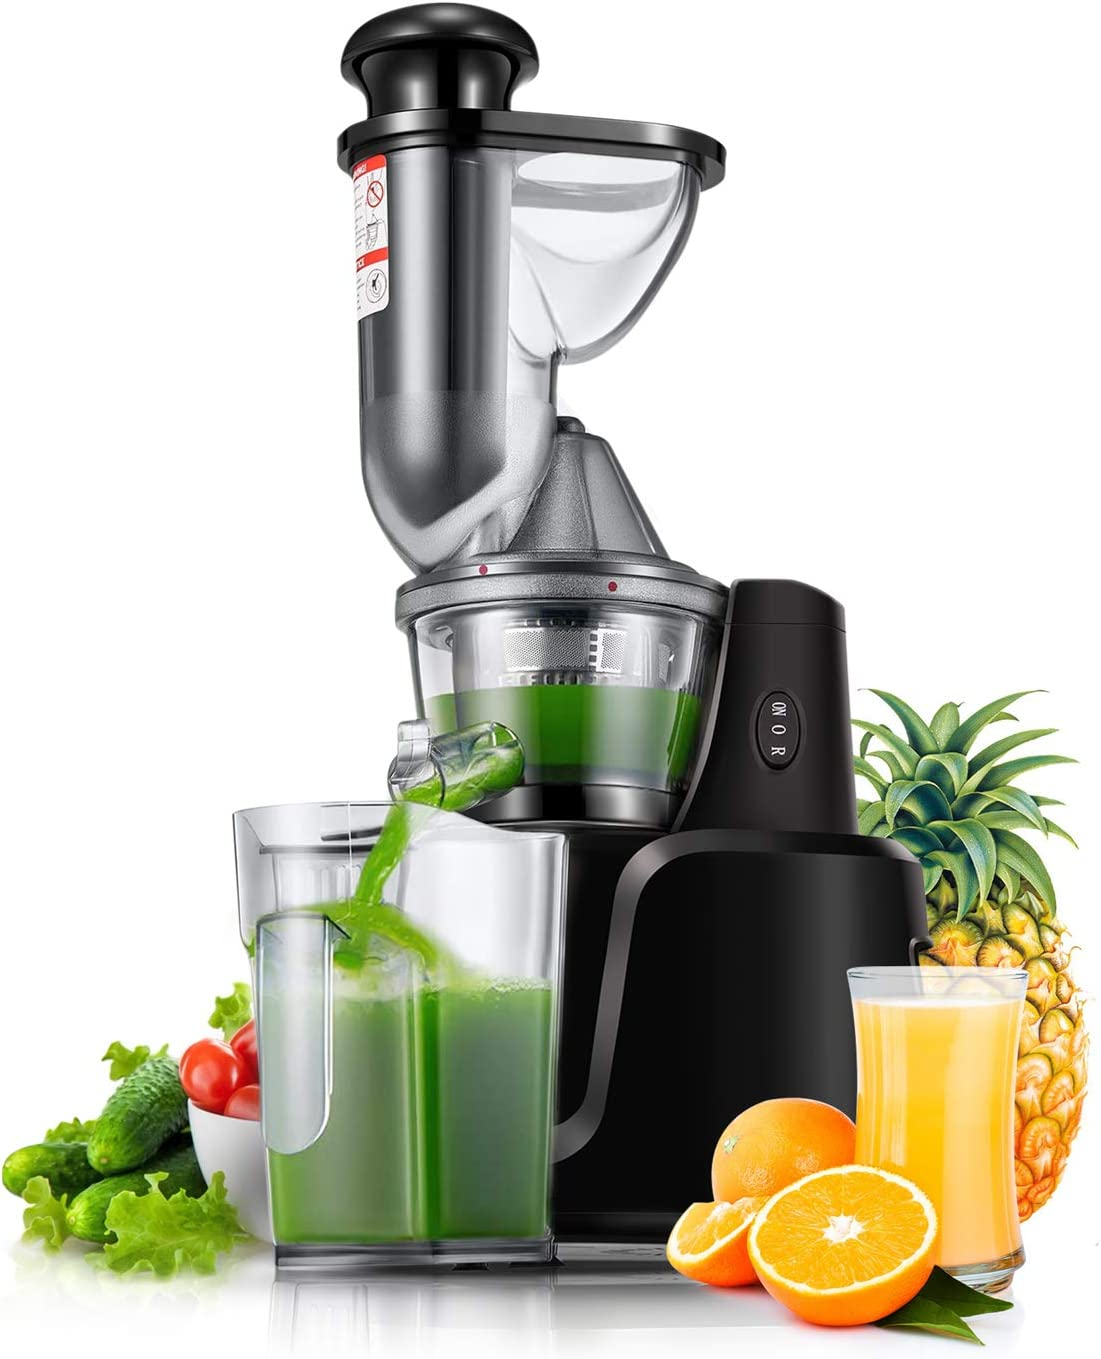 Juicer Machines, [2020 Upgrade] Joerid Slow Masticating Juicer Extractor Reverse Function, BPA-Free, Cold Press Juicer with Brush, Juice Recipes for Vegetables and Fruits